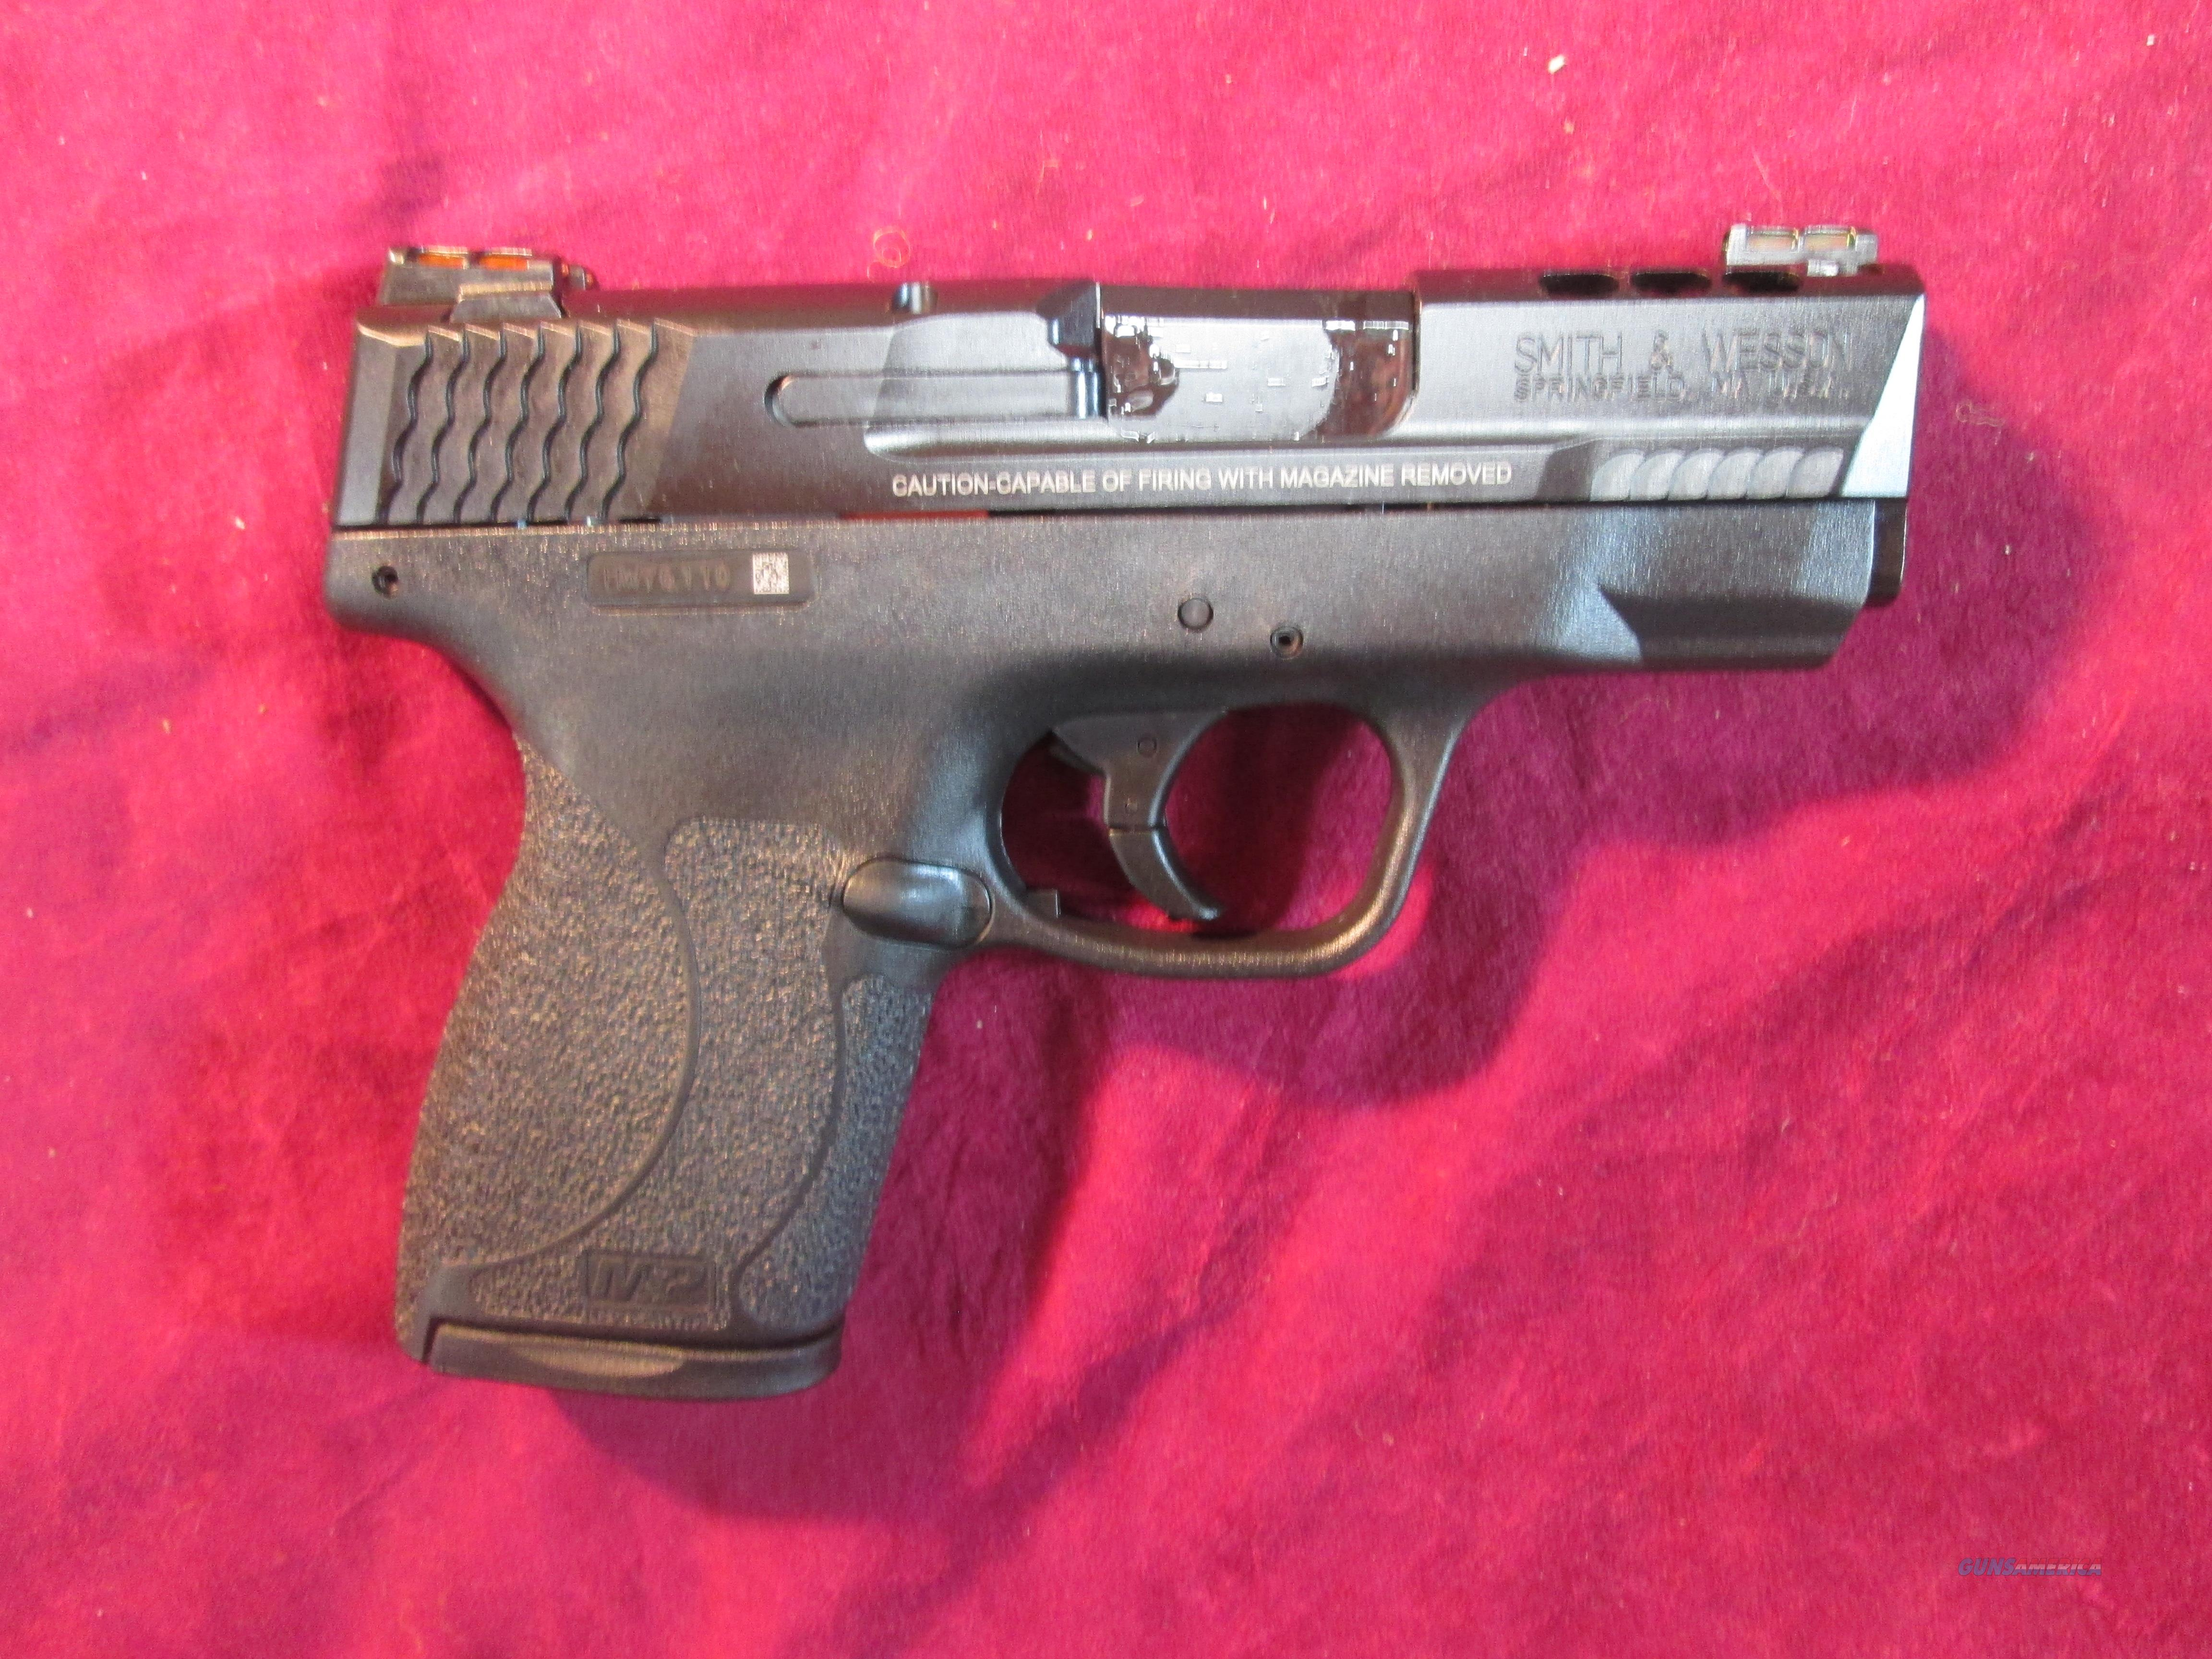 SMITH AND WESSON M&P SHIELD PERFORMANCE CENTER 45ACP NO SAFETY NEW  (11629)  Guns > Pistols > Smith & Wesson Pistols - Autos > Polymer Frame